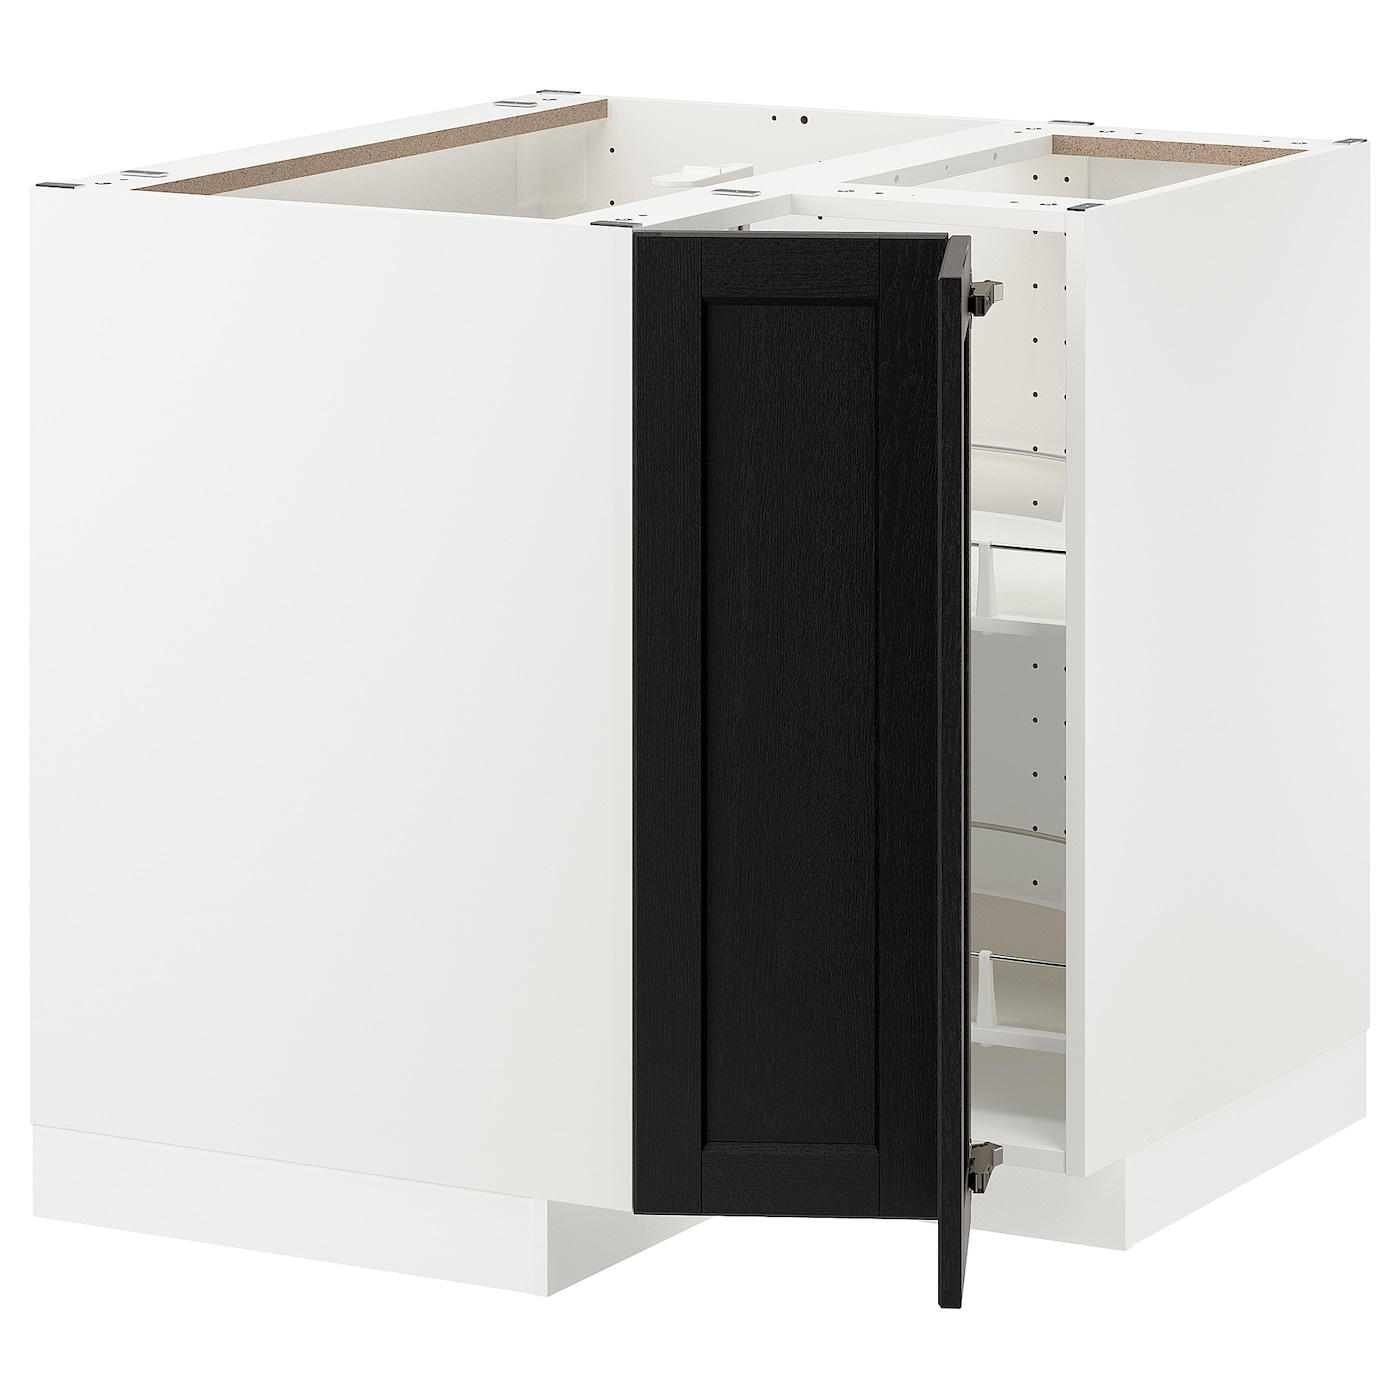 Ikea metod corner base cabinet with carousel sturdy frame construction 18 mm thick